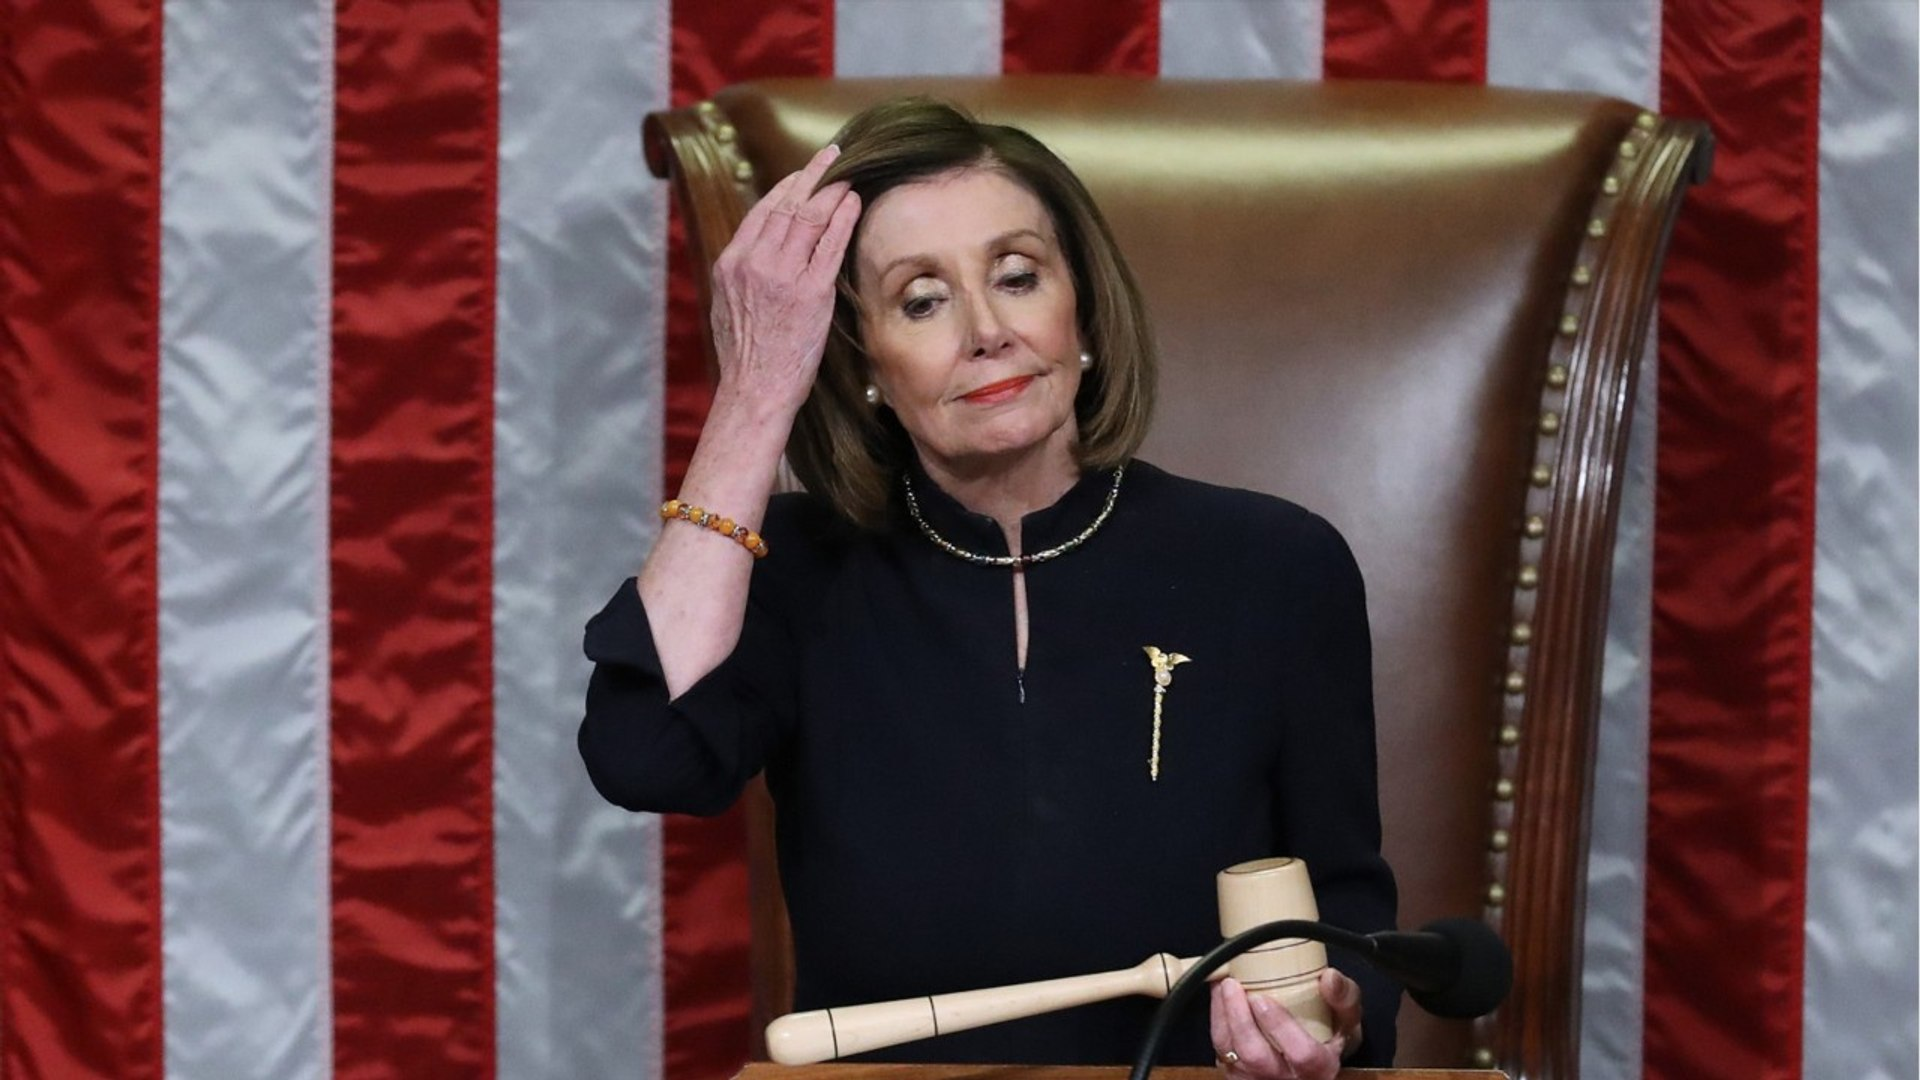 House Speaker Nancy Pelosi Makes Trump Squirm, Trump Incensed